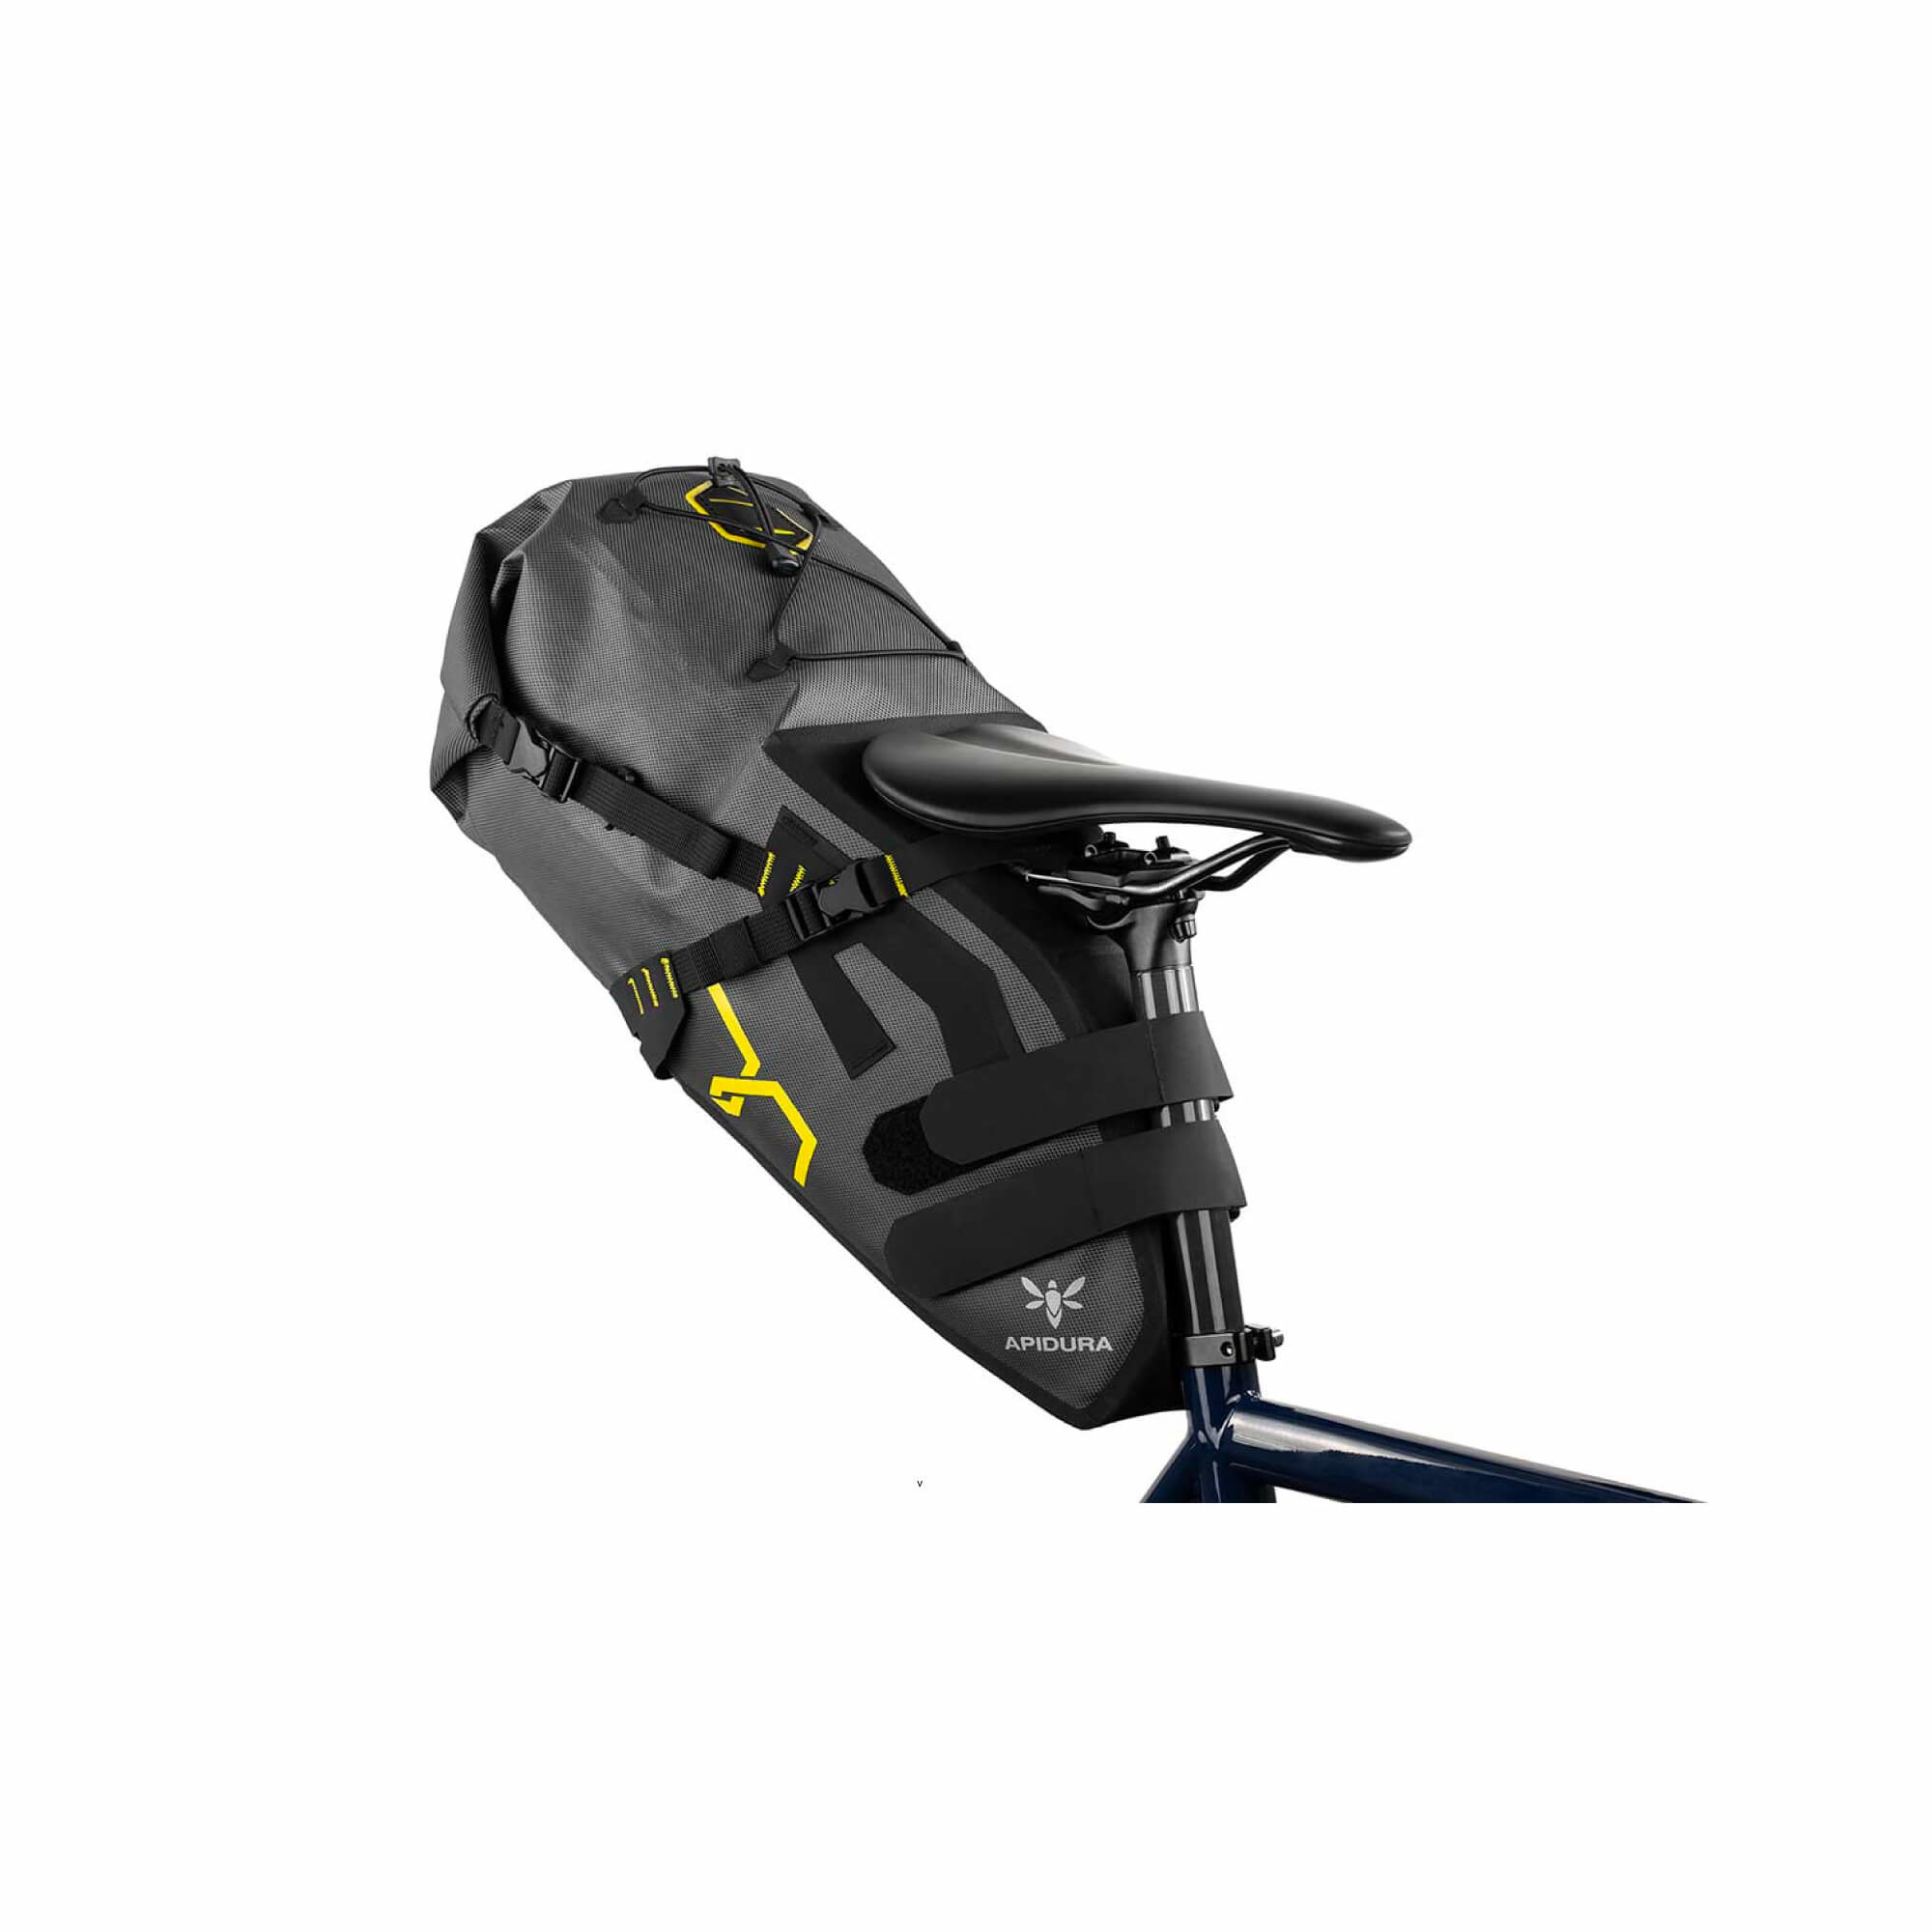 Expedition Saddle Pack 17 L-4